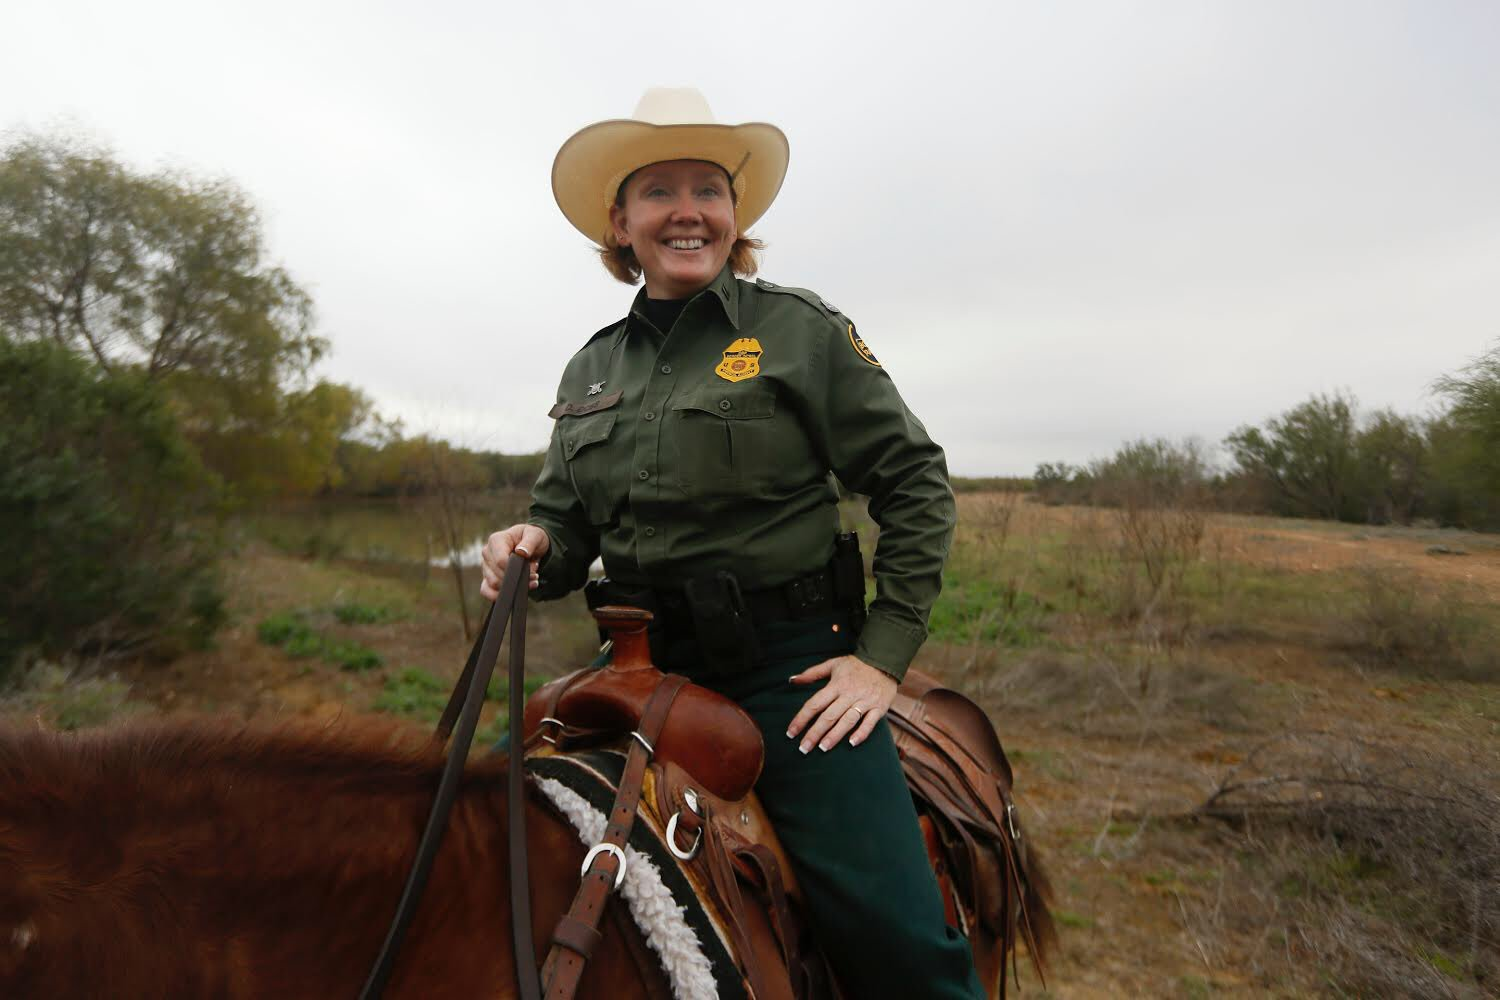 Border Patrol Agent Donna Marie Doss | United States Department of Homeland Security - Customs and Border Protection - United States Border Patrol, U.S. Government